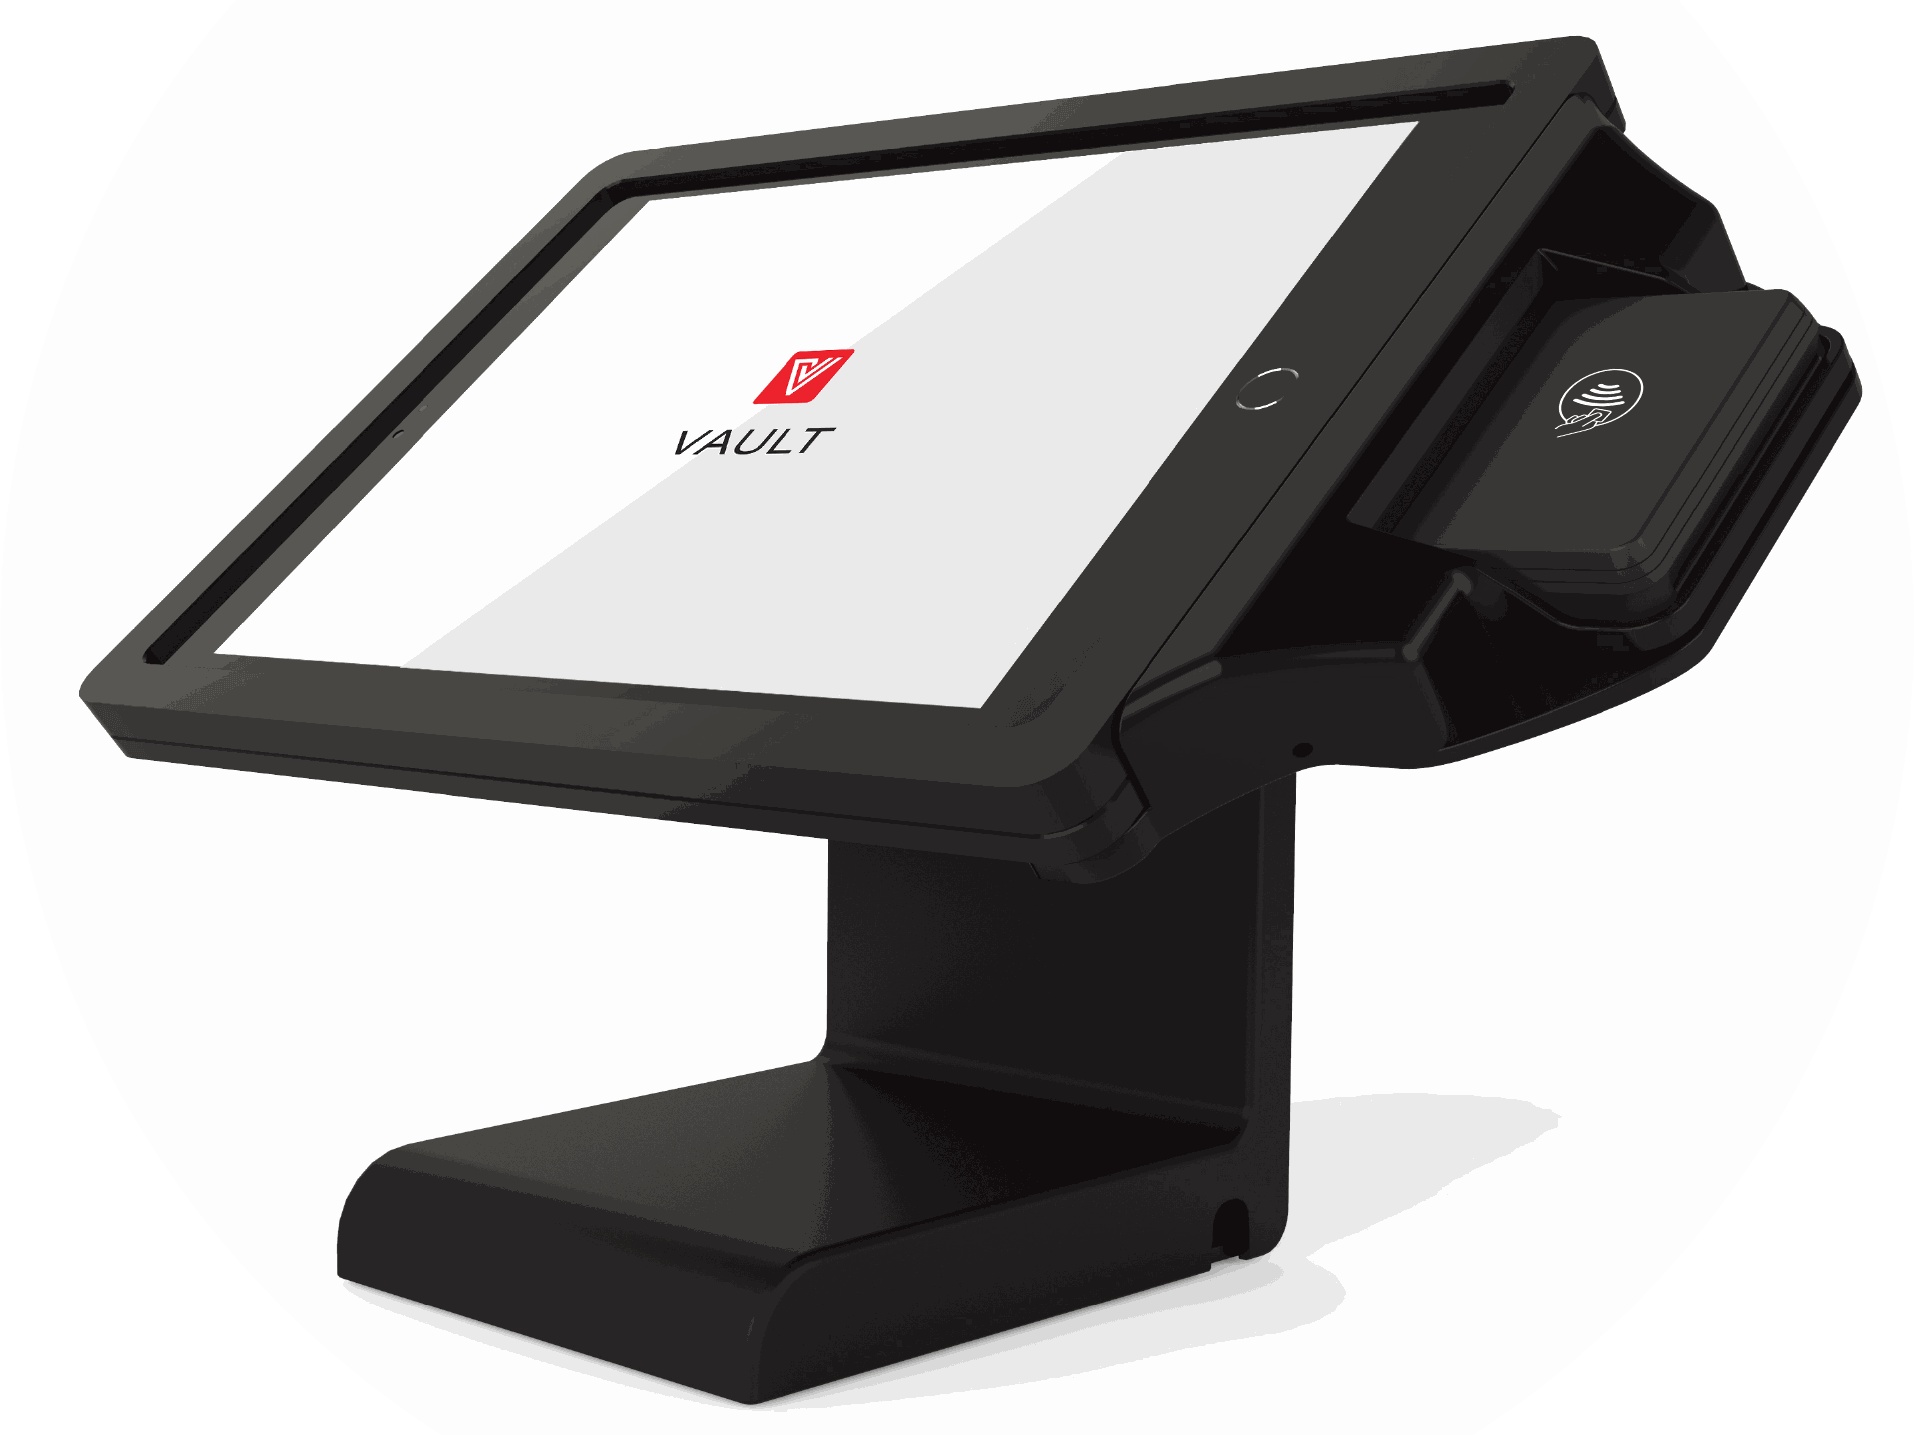 VAULT PRO tablet enclosure with BBPOS Chipper support bracket